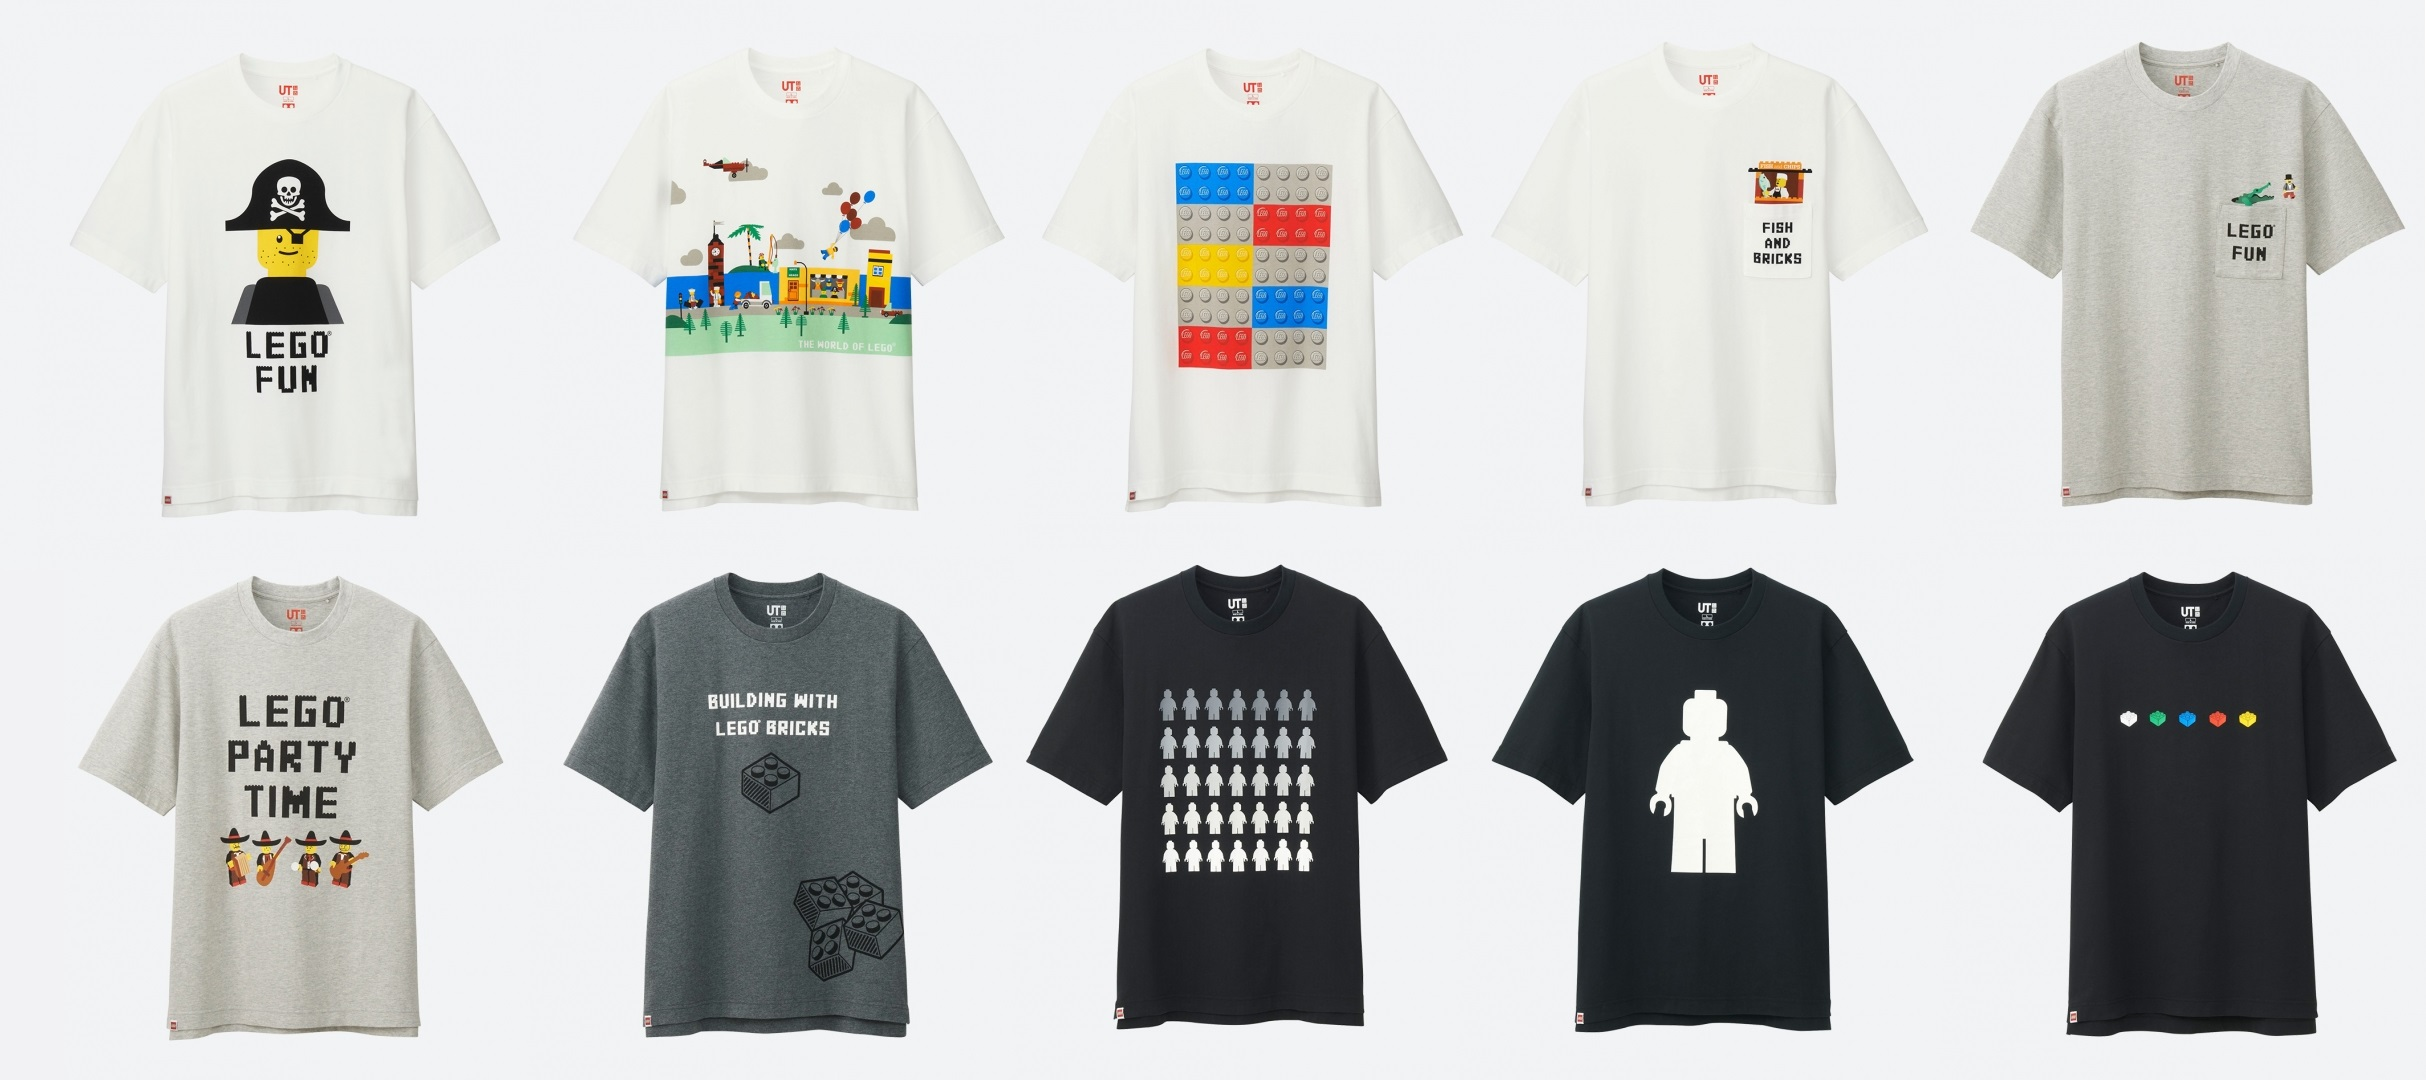 Review uniqlo lego collection season 2 t shirts stopboris Choice Image